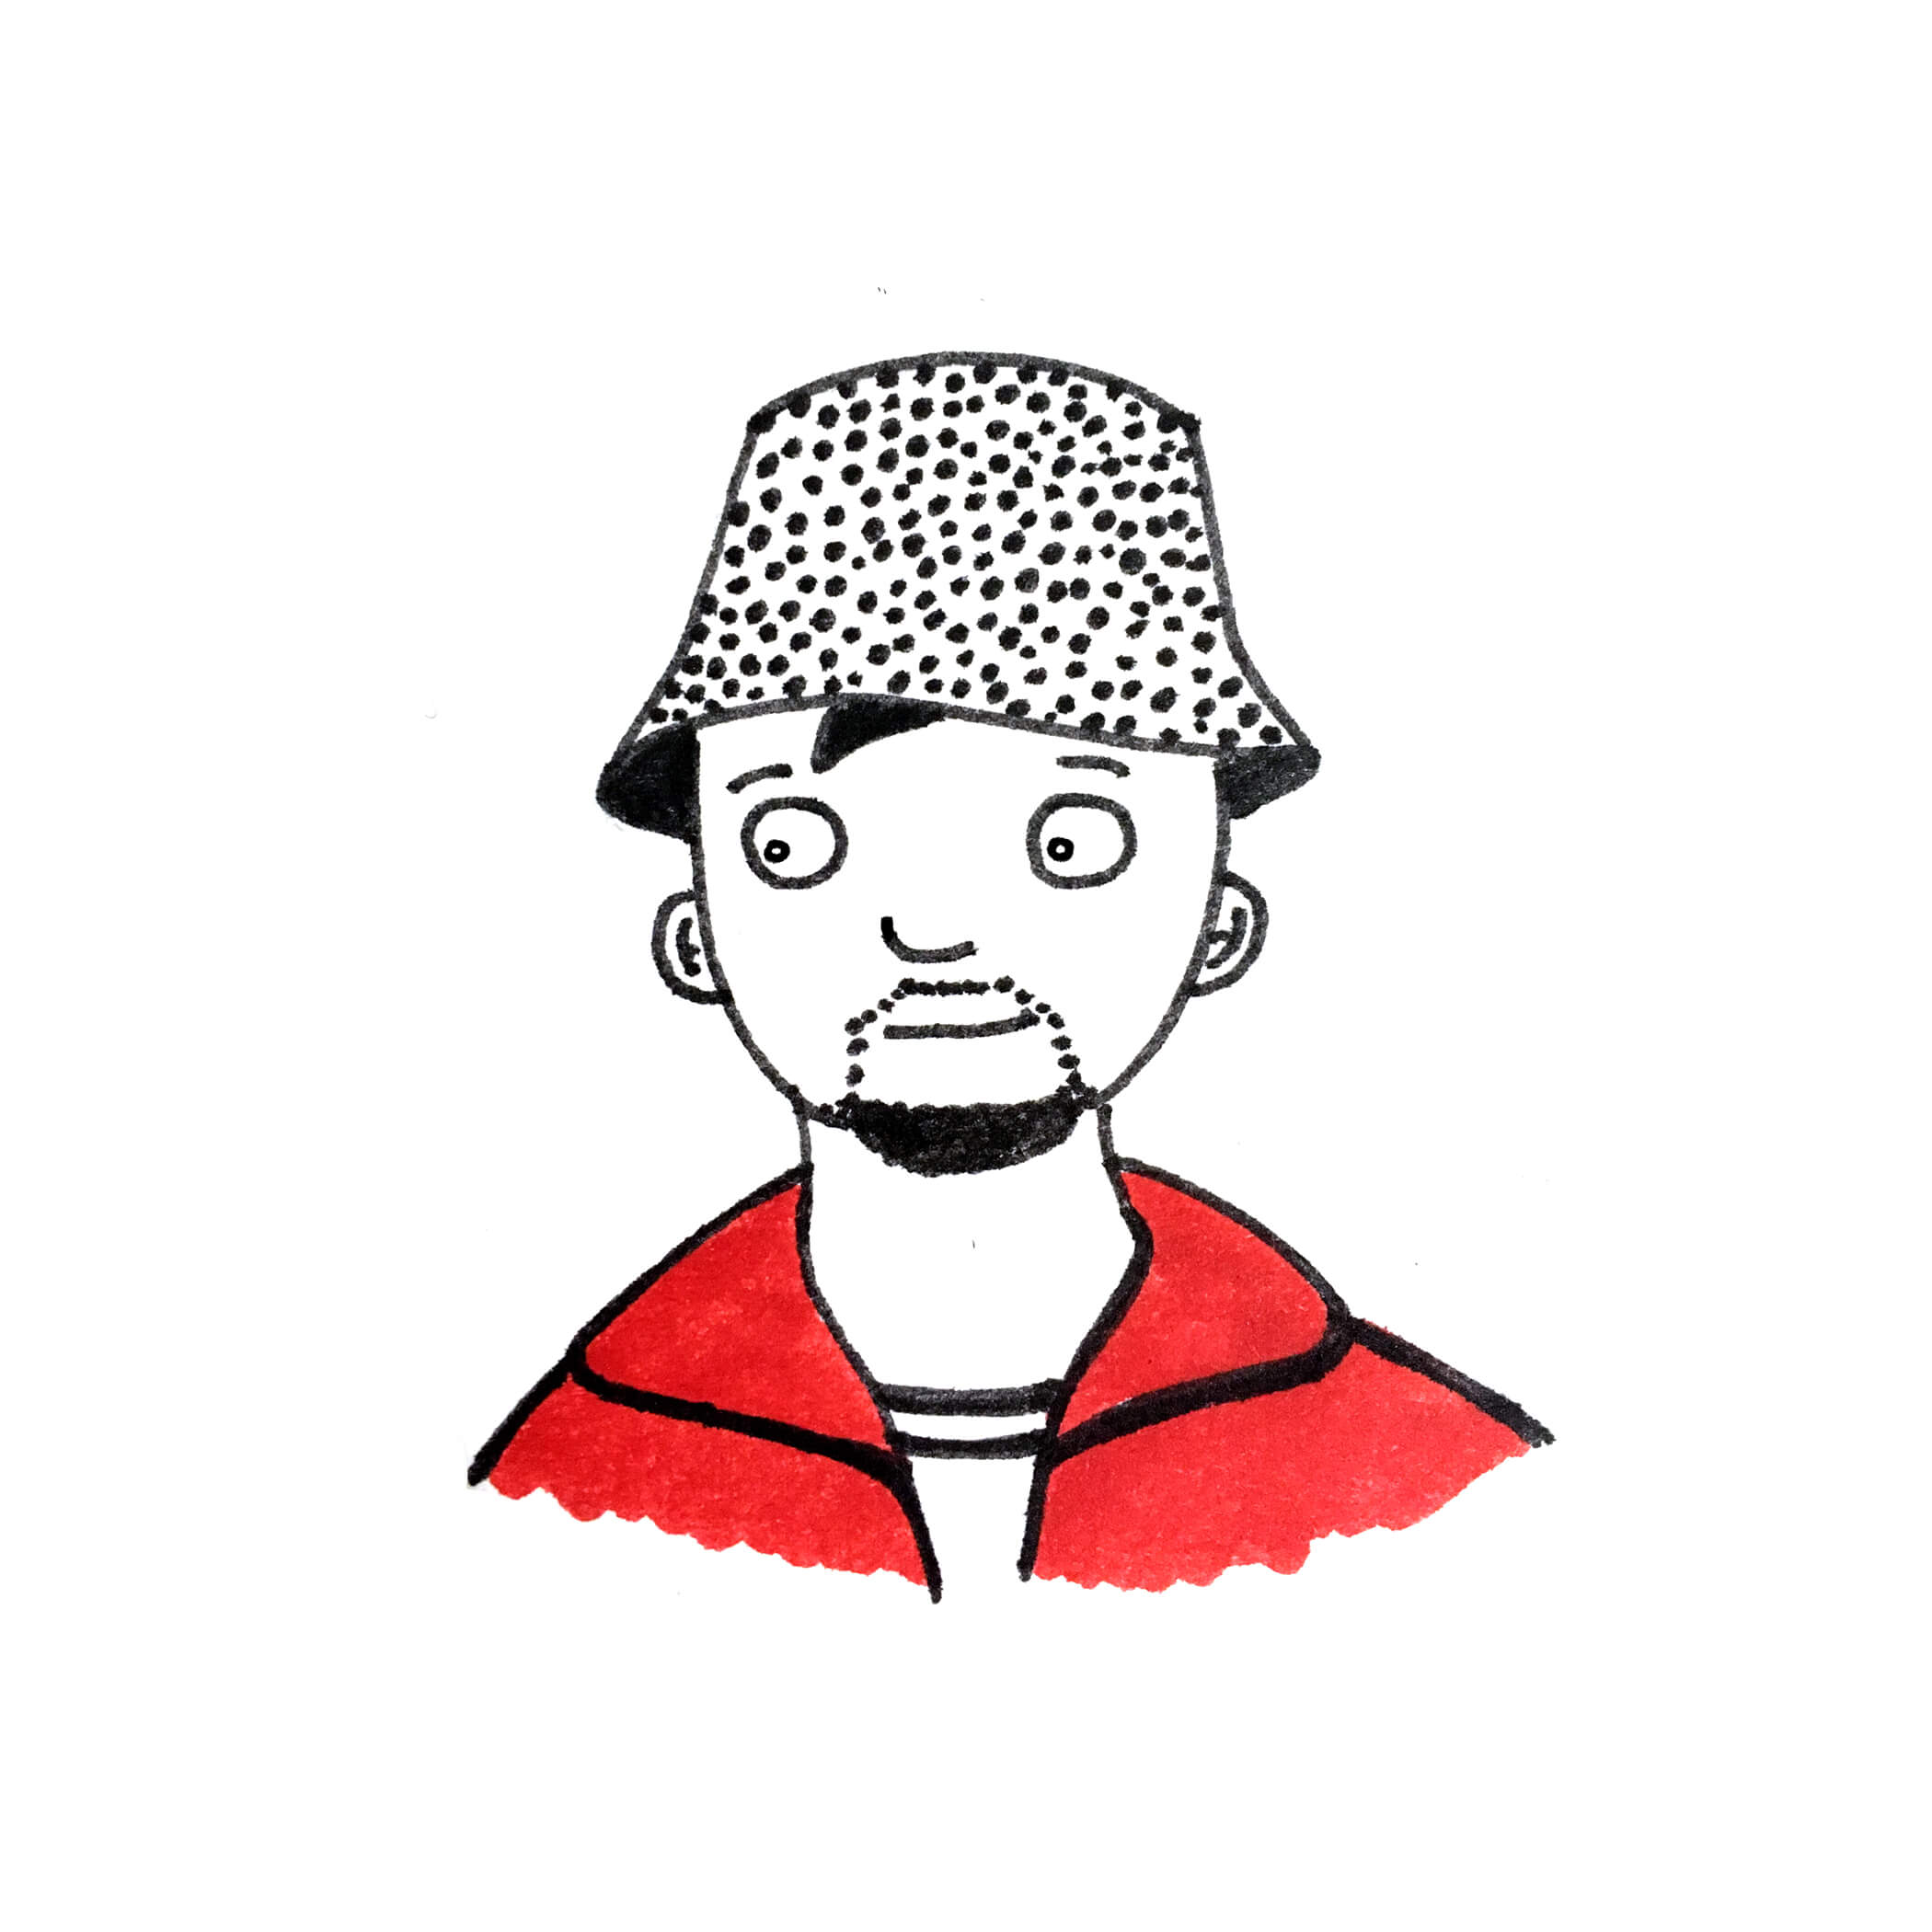 Man with a hat and a red t-shirt